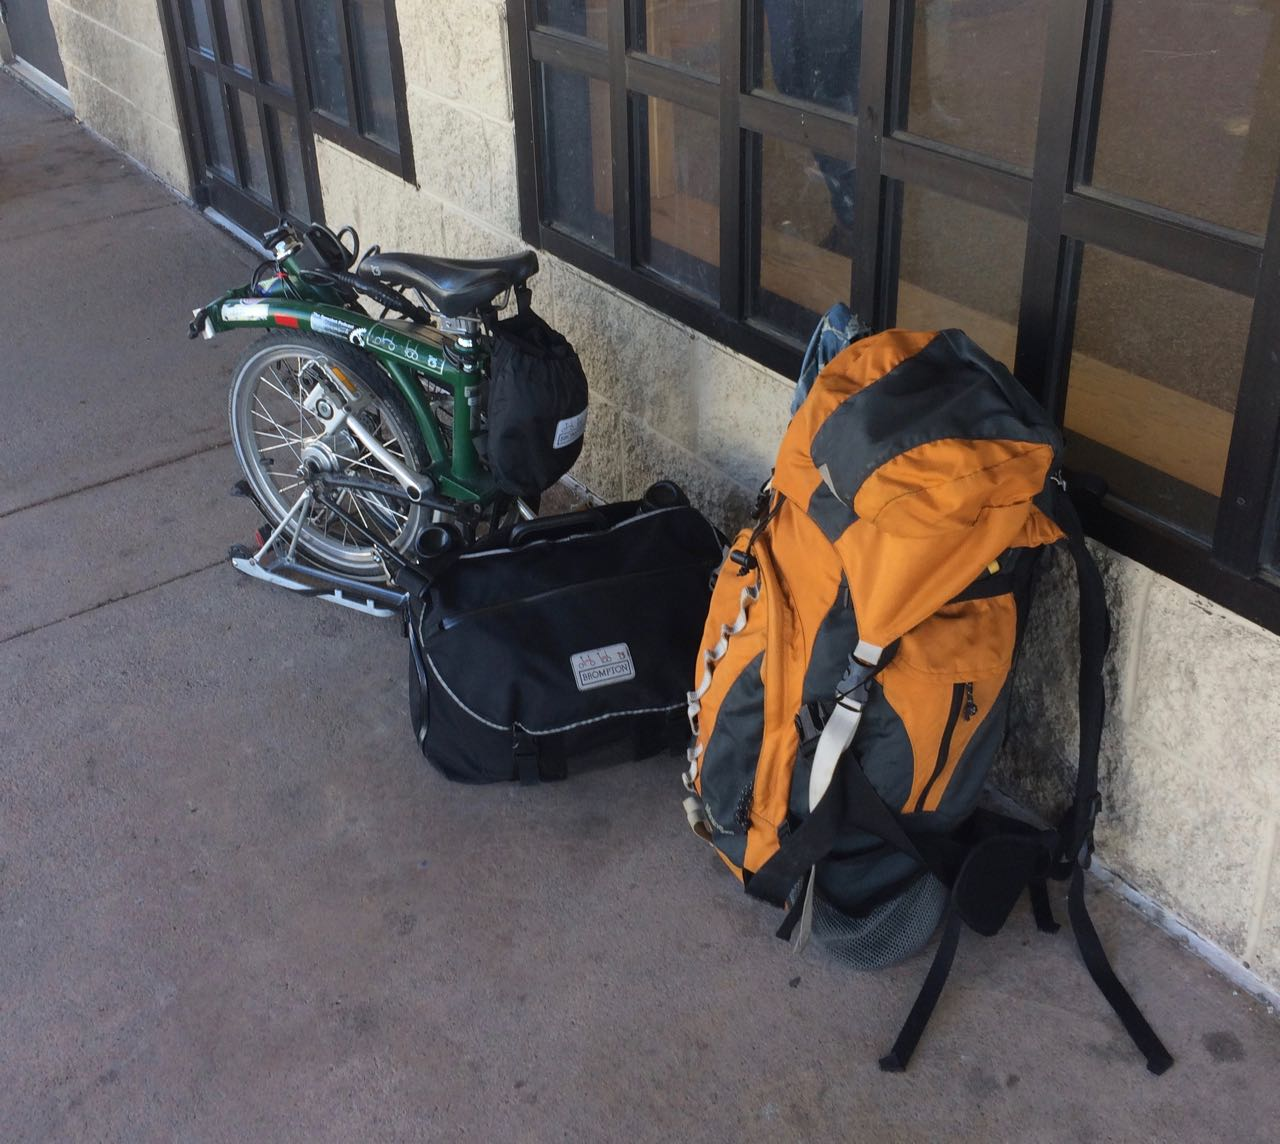 Waiting for the Bus in Frisco, CO